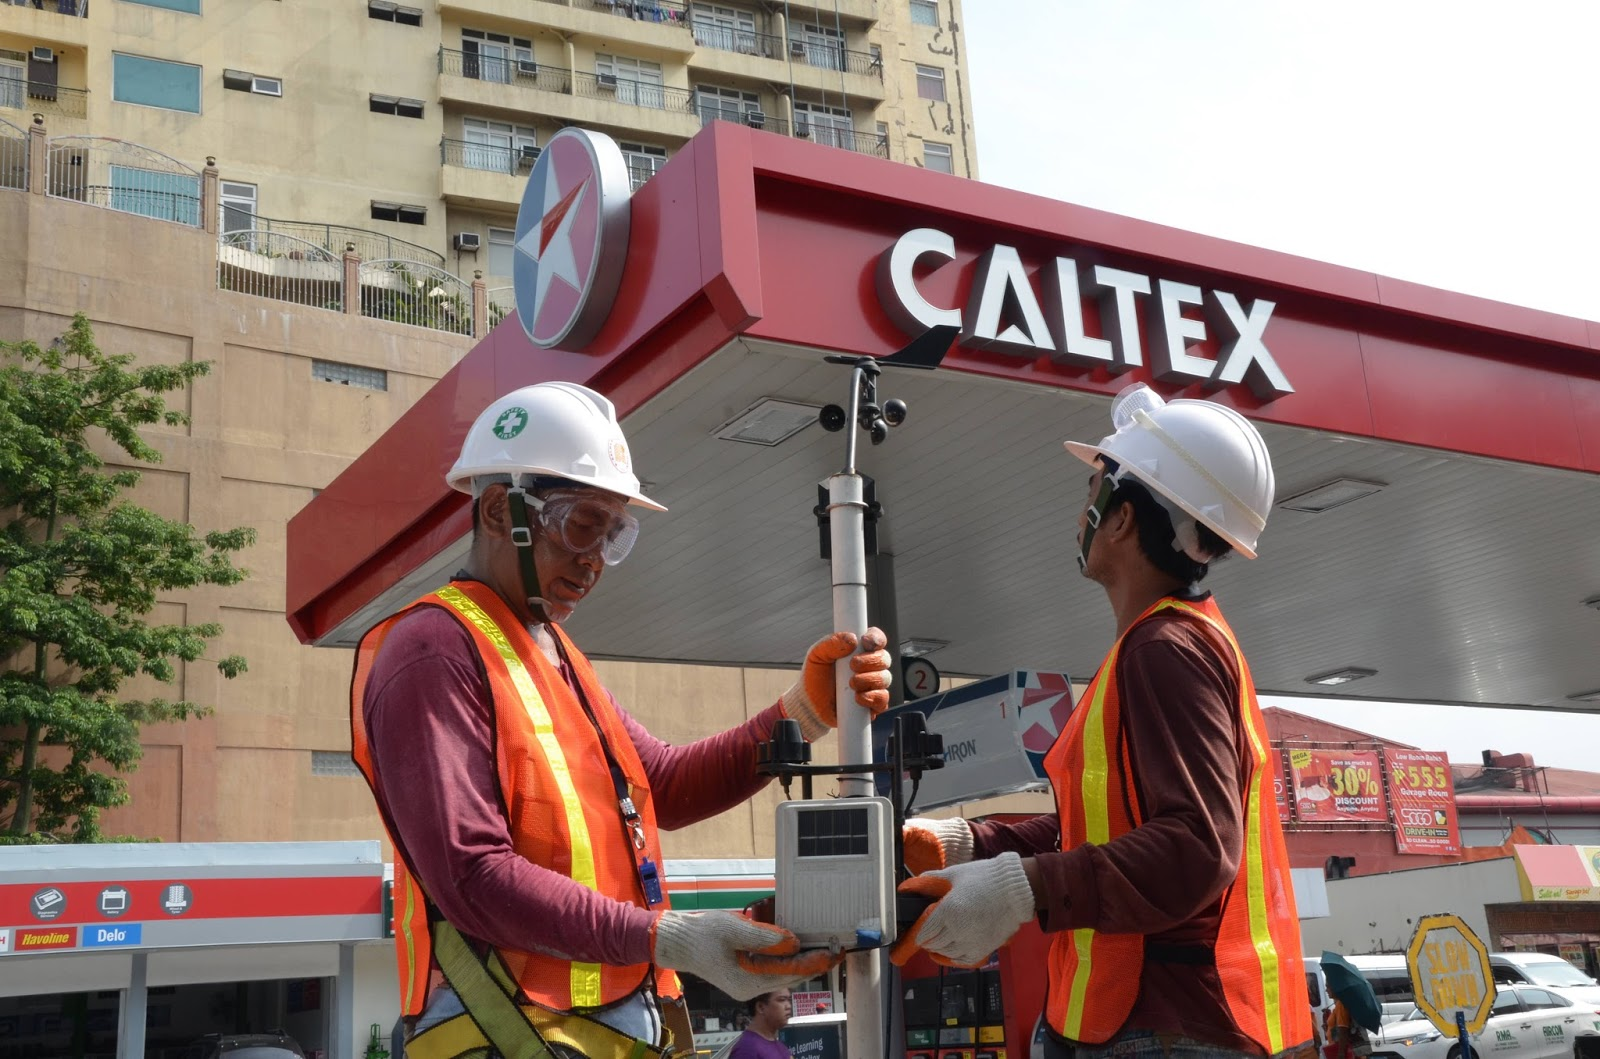 AWS unit in Caltex Station